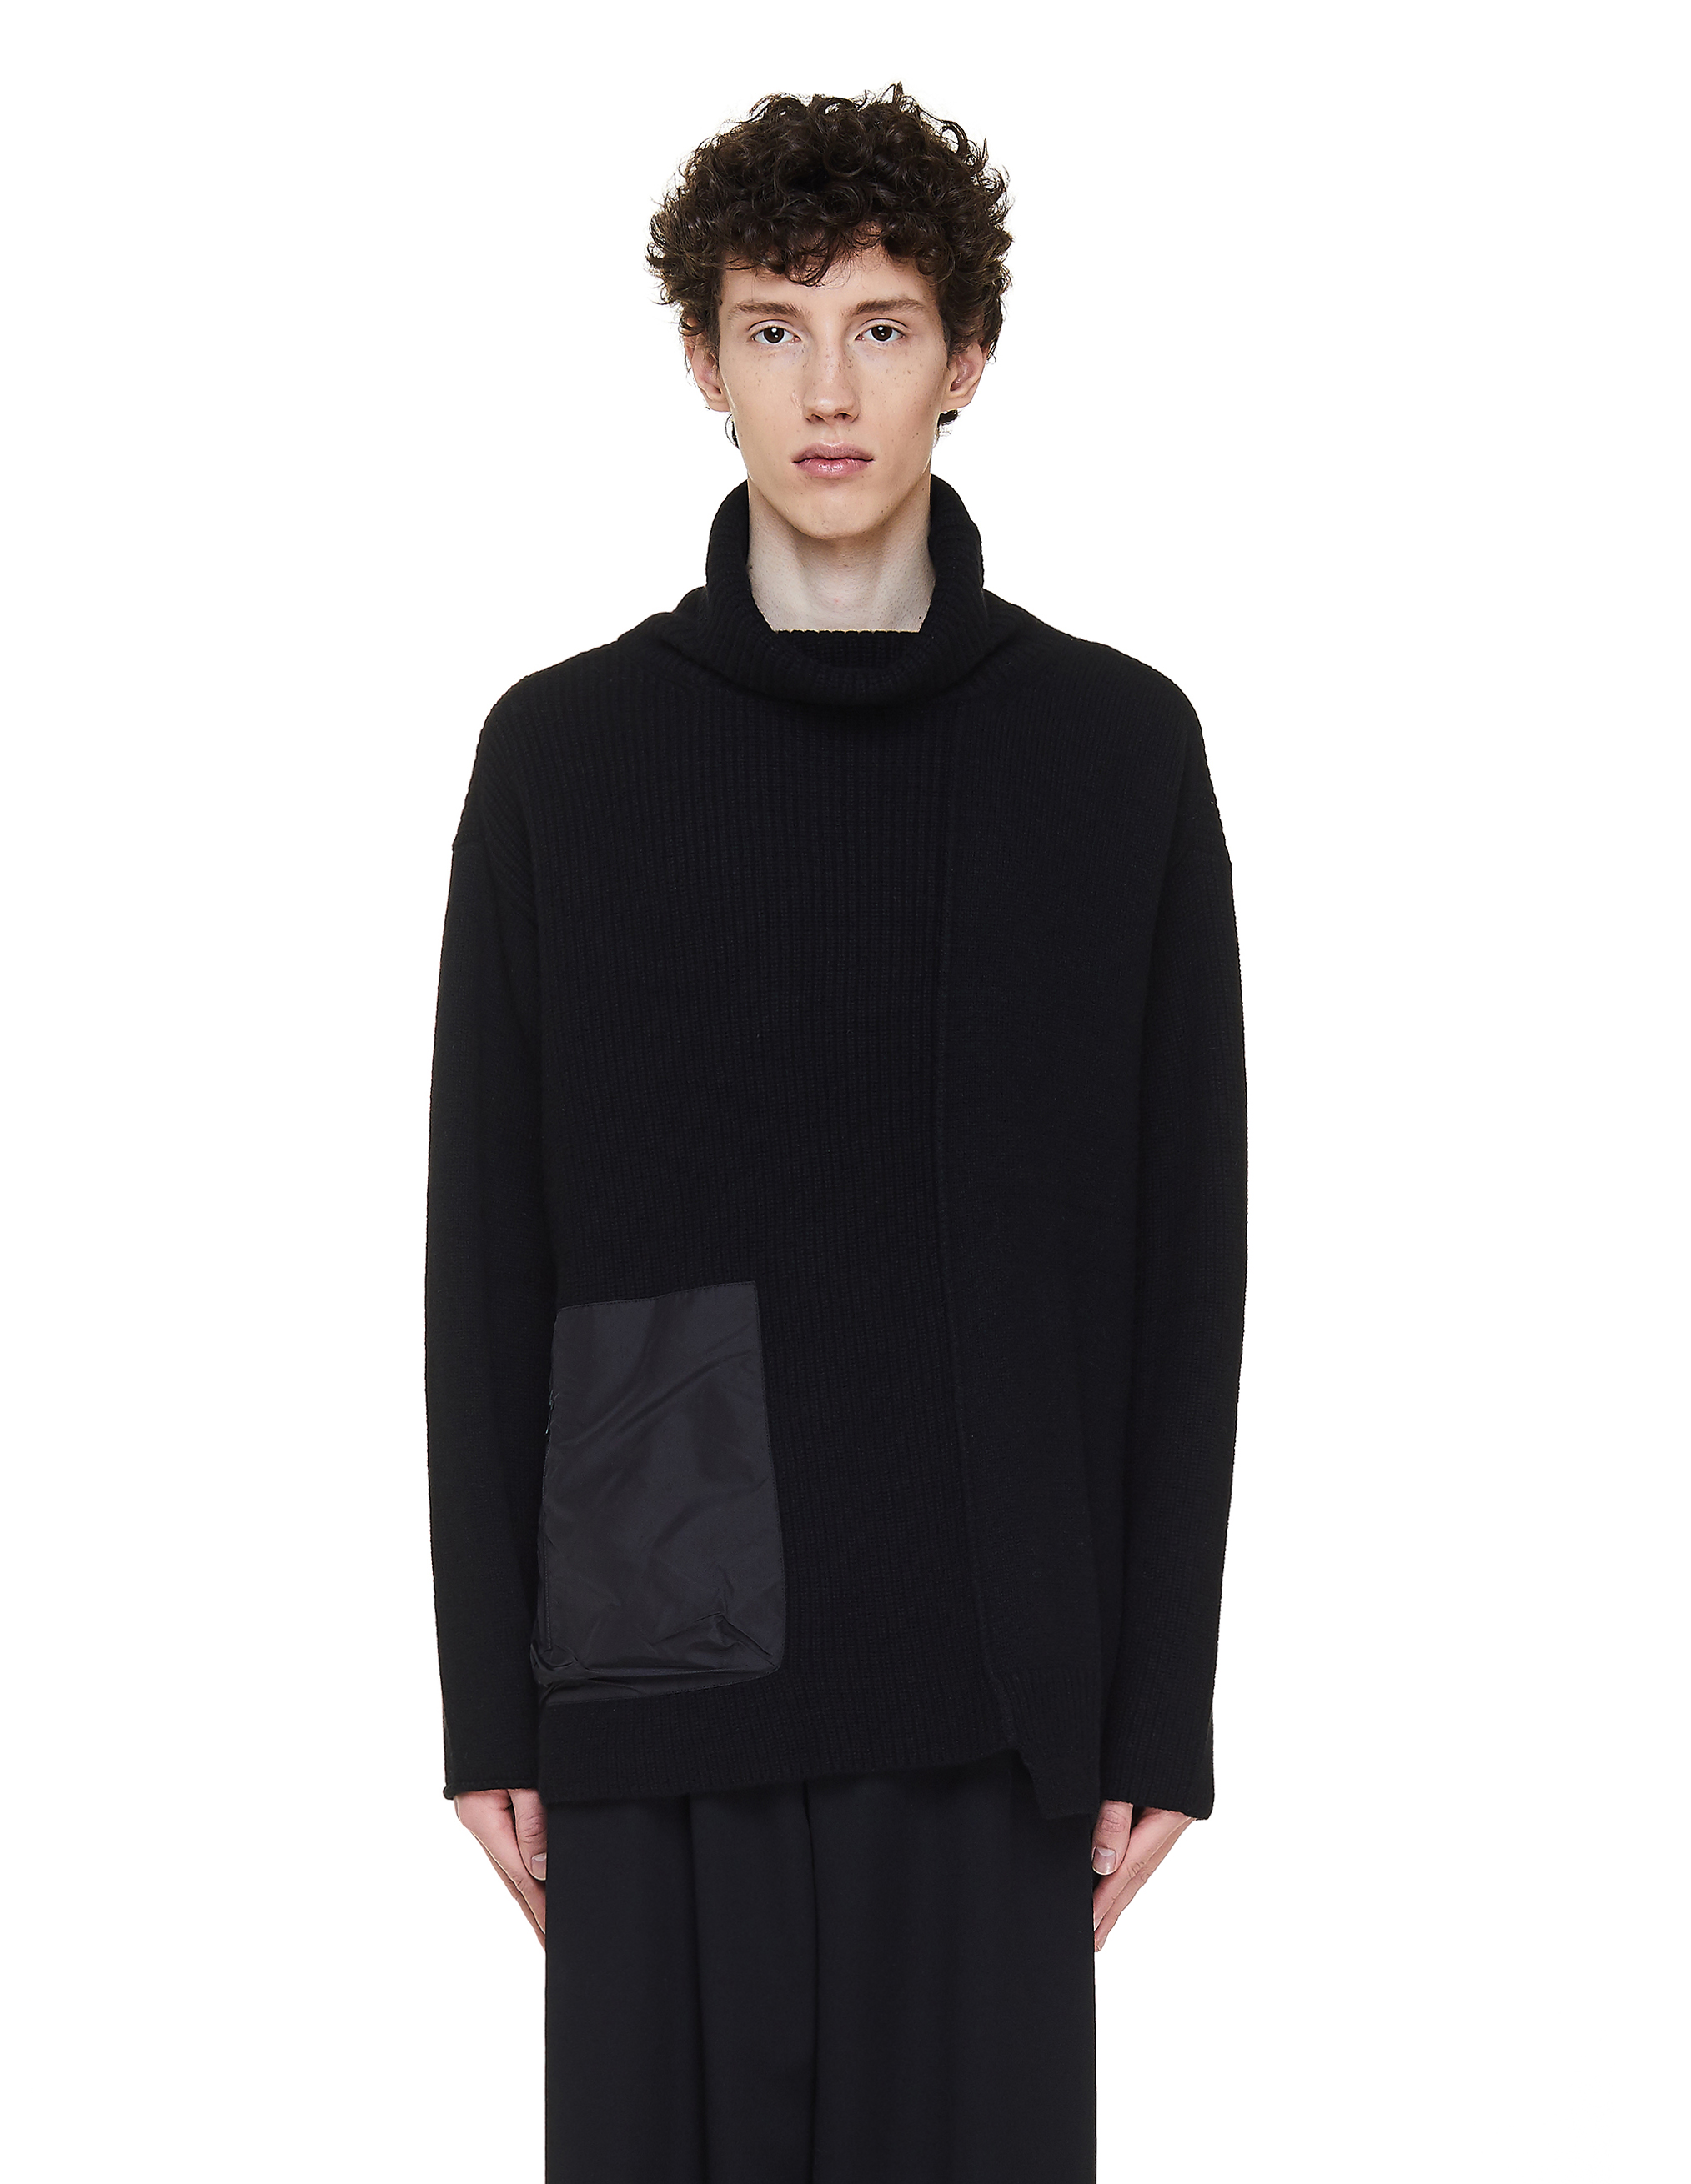 The Viridi-Anne Black Sweater With Pocket